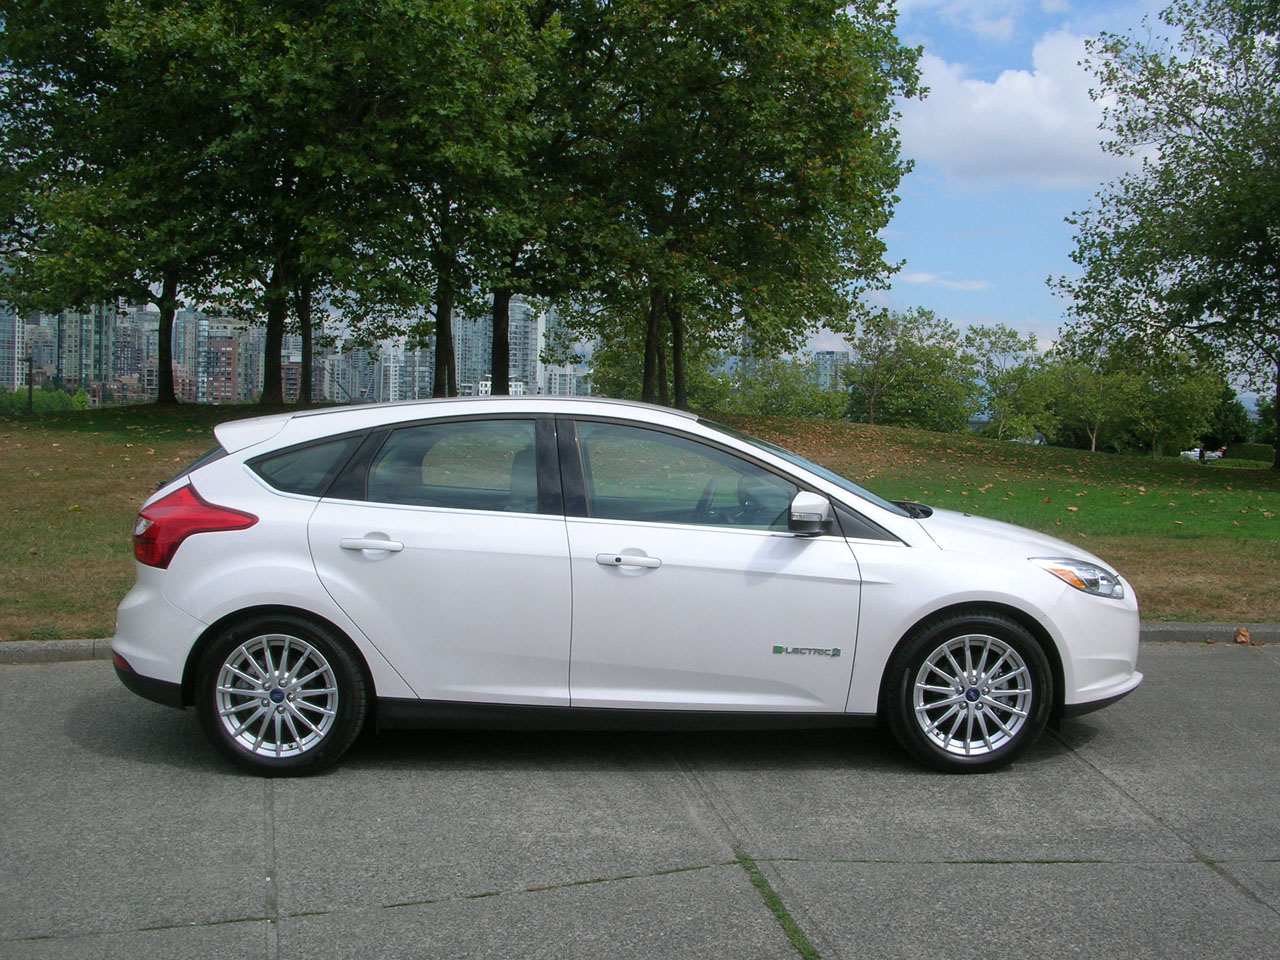 2014 ford focus electric road test review carcostcanada. Cars Review. Best American Auto & Cars Review